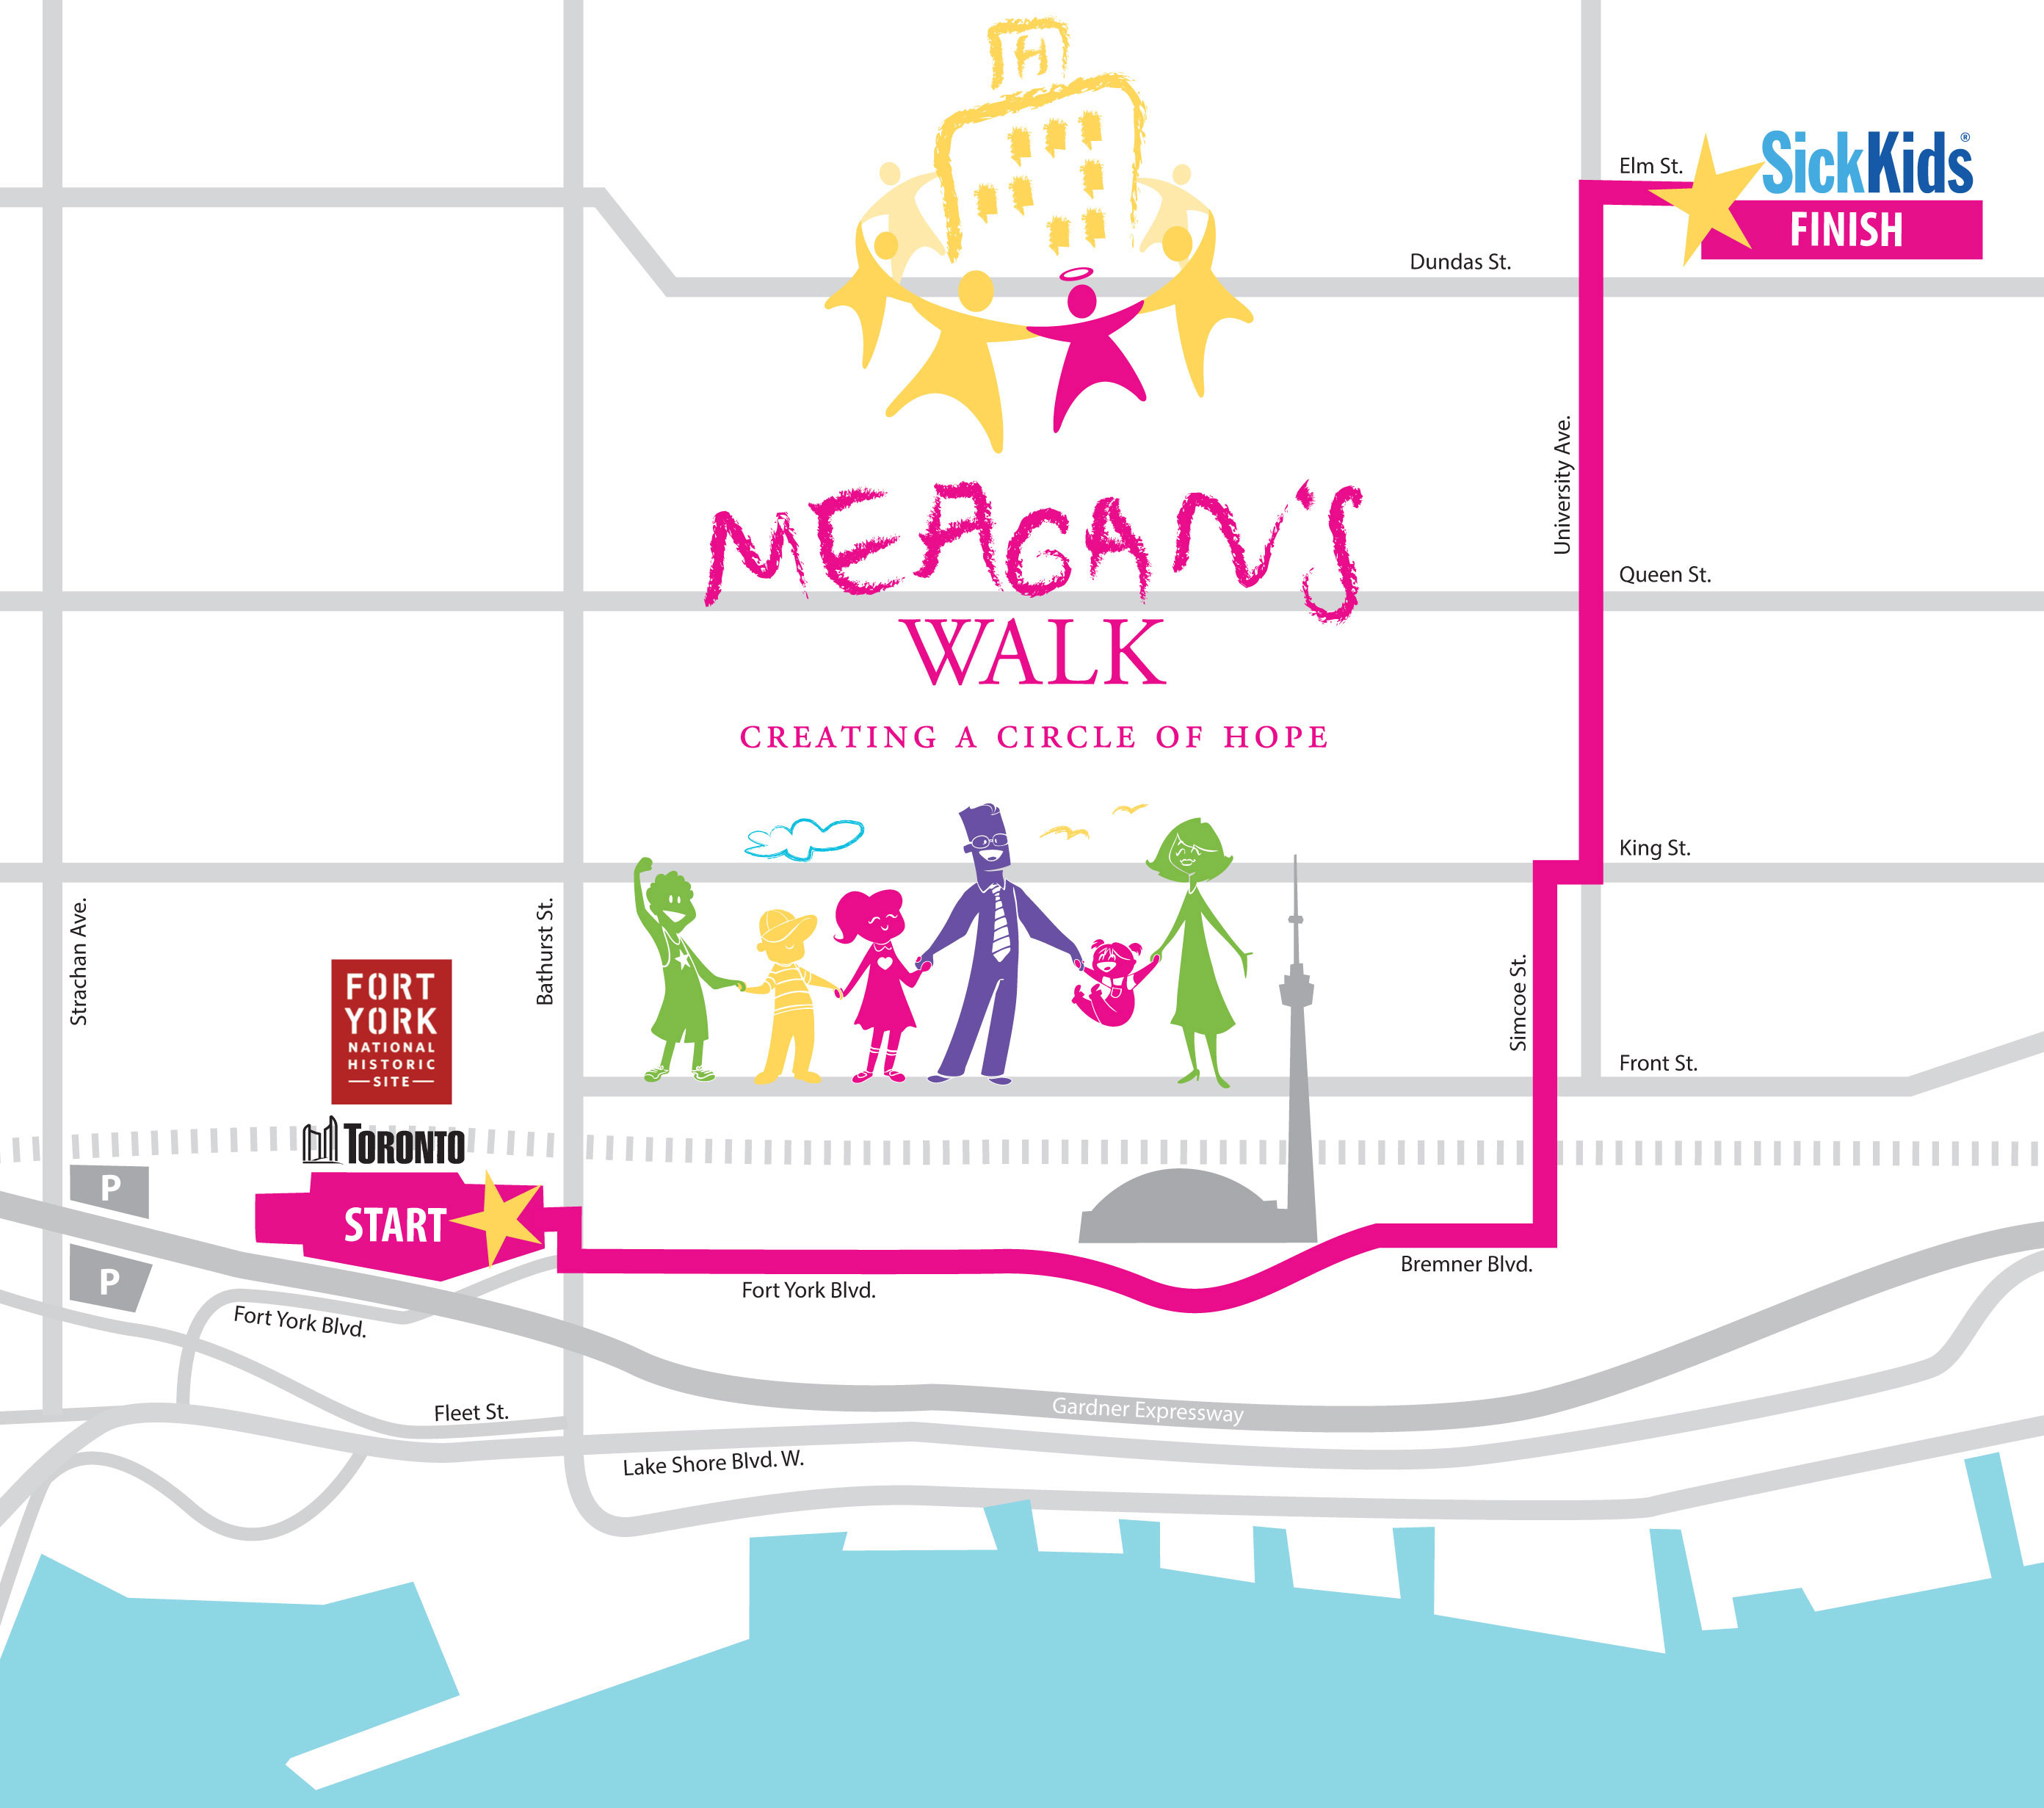 Route map for Meagan's Walk. Photo via meaganswalk.com.